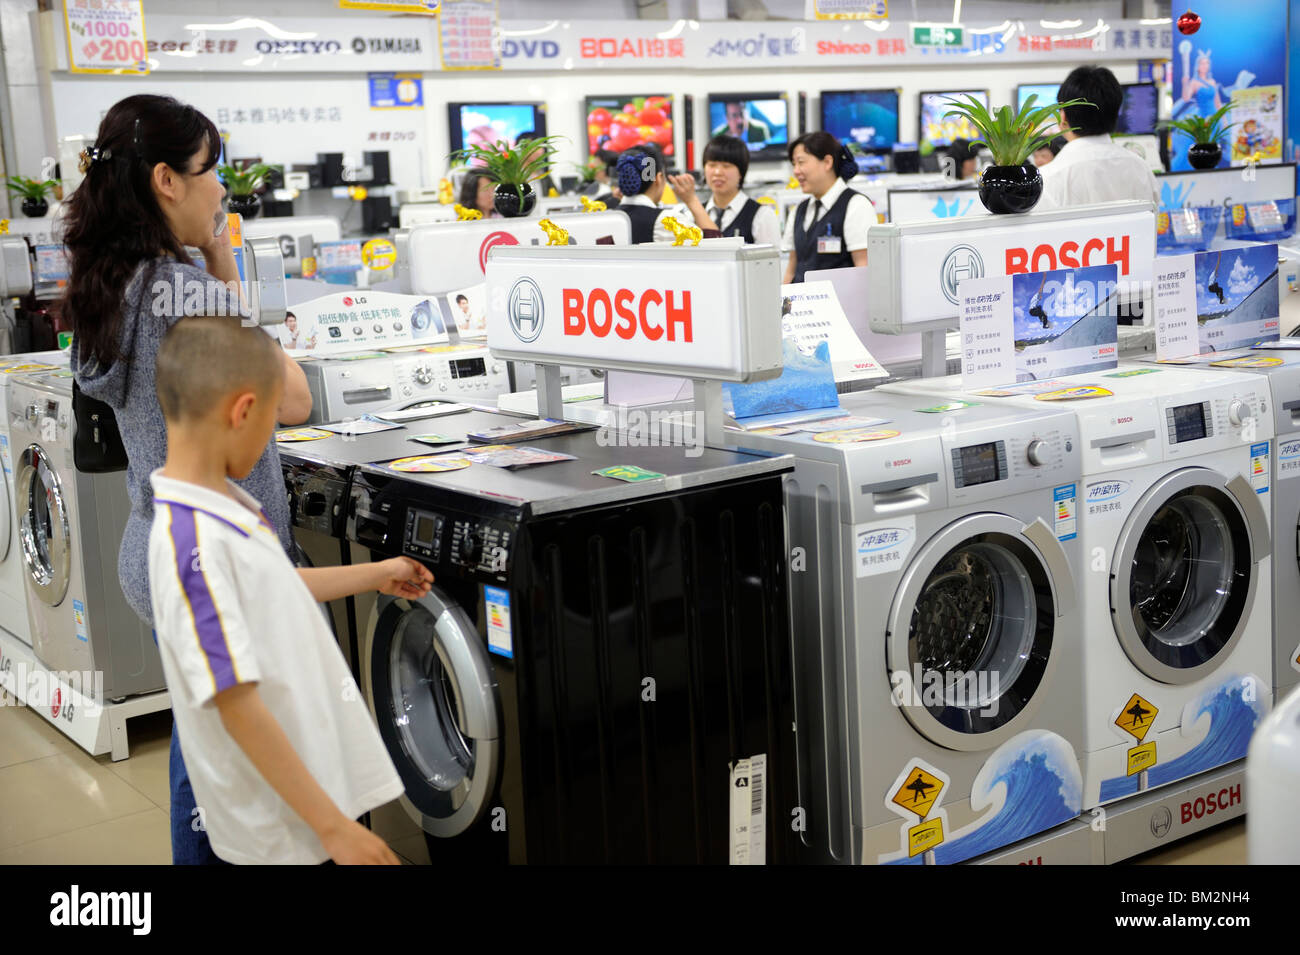 Bosch washing machines at a Suning Appliance Co. store in Beijing, China. 16-May-2010 - Stock Image